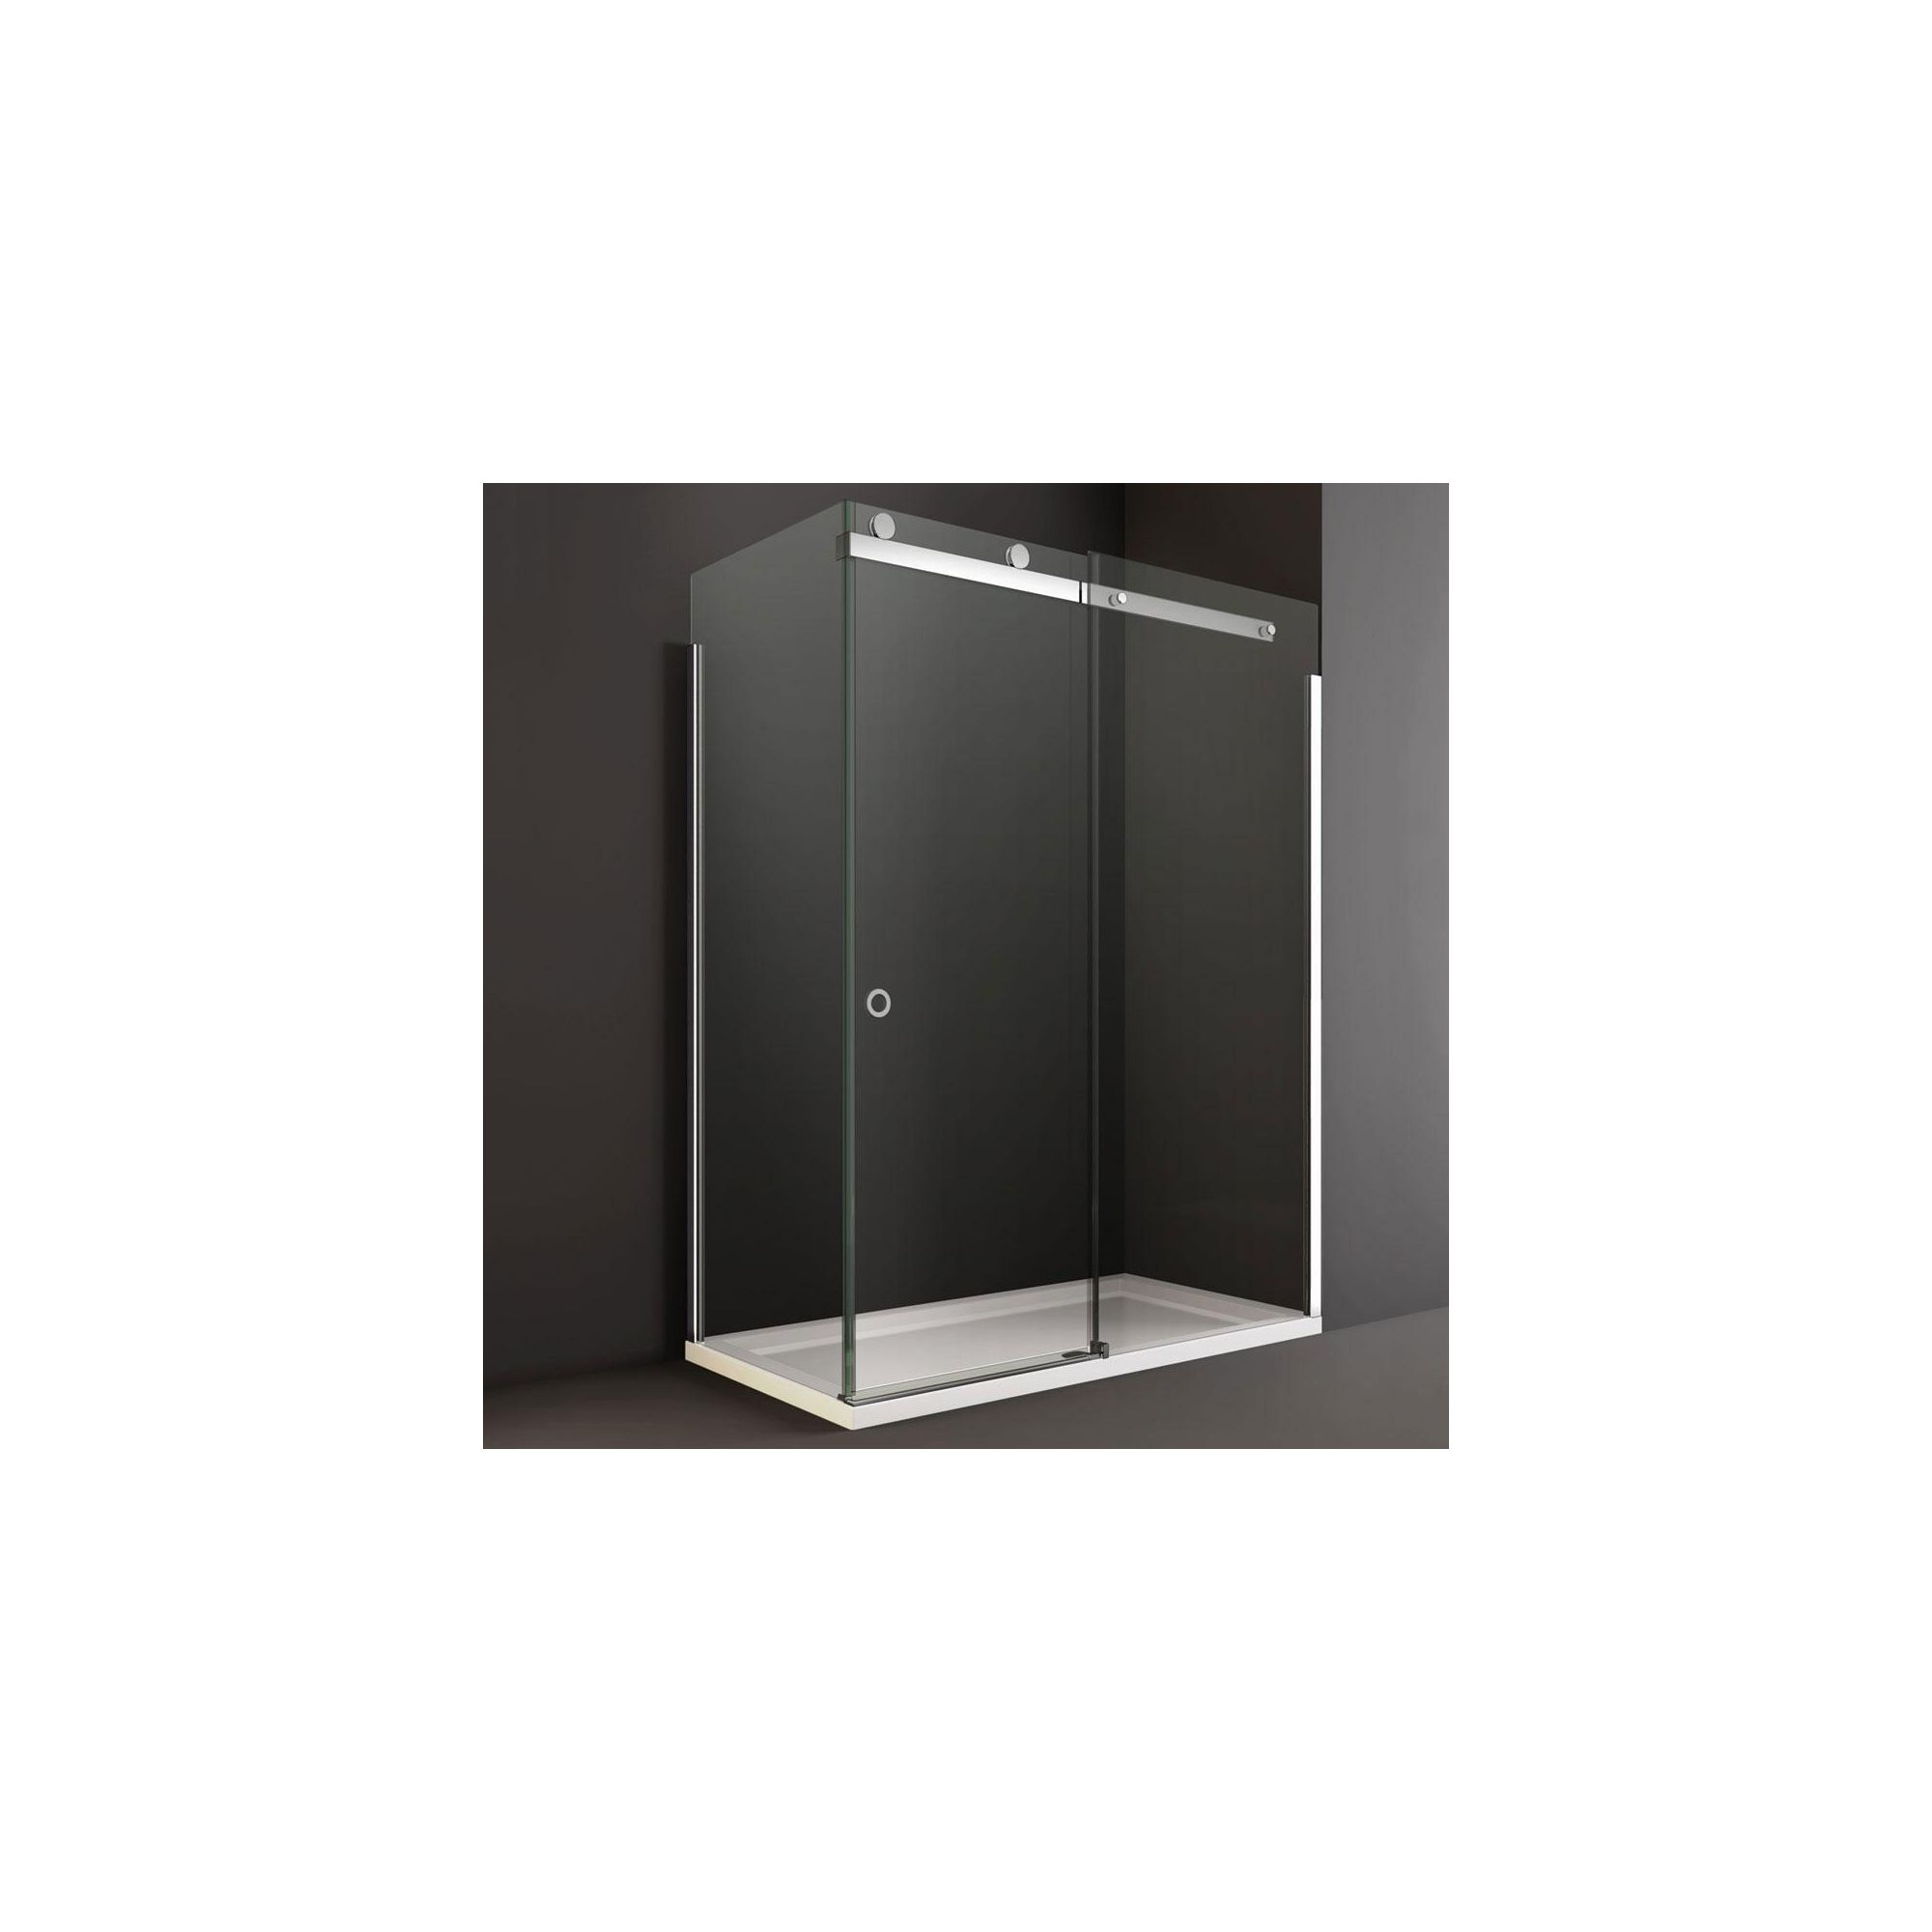 Merlyn Series 10 Sliding Shower Door, 1000mm Wide, 10mm Clear Glass, Right Handed at Tescos Direct